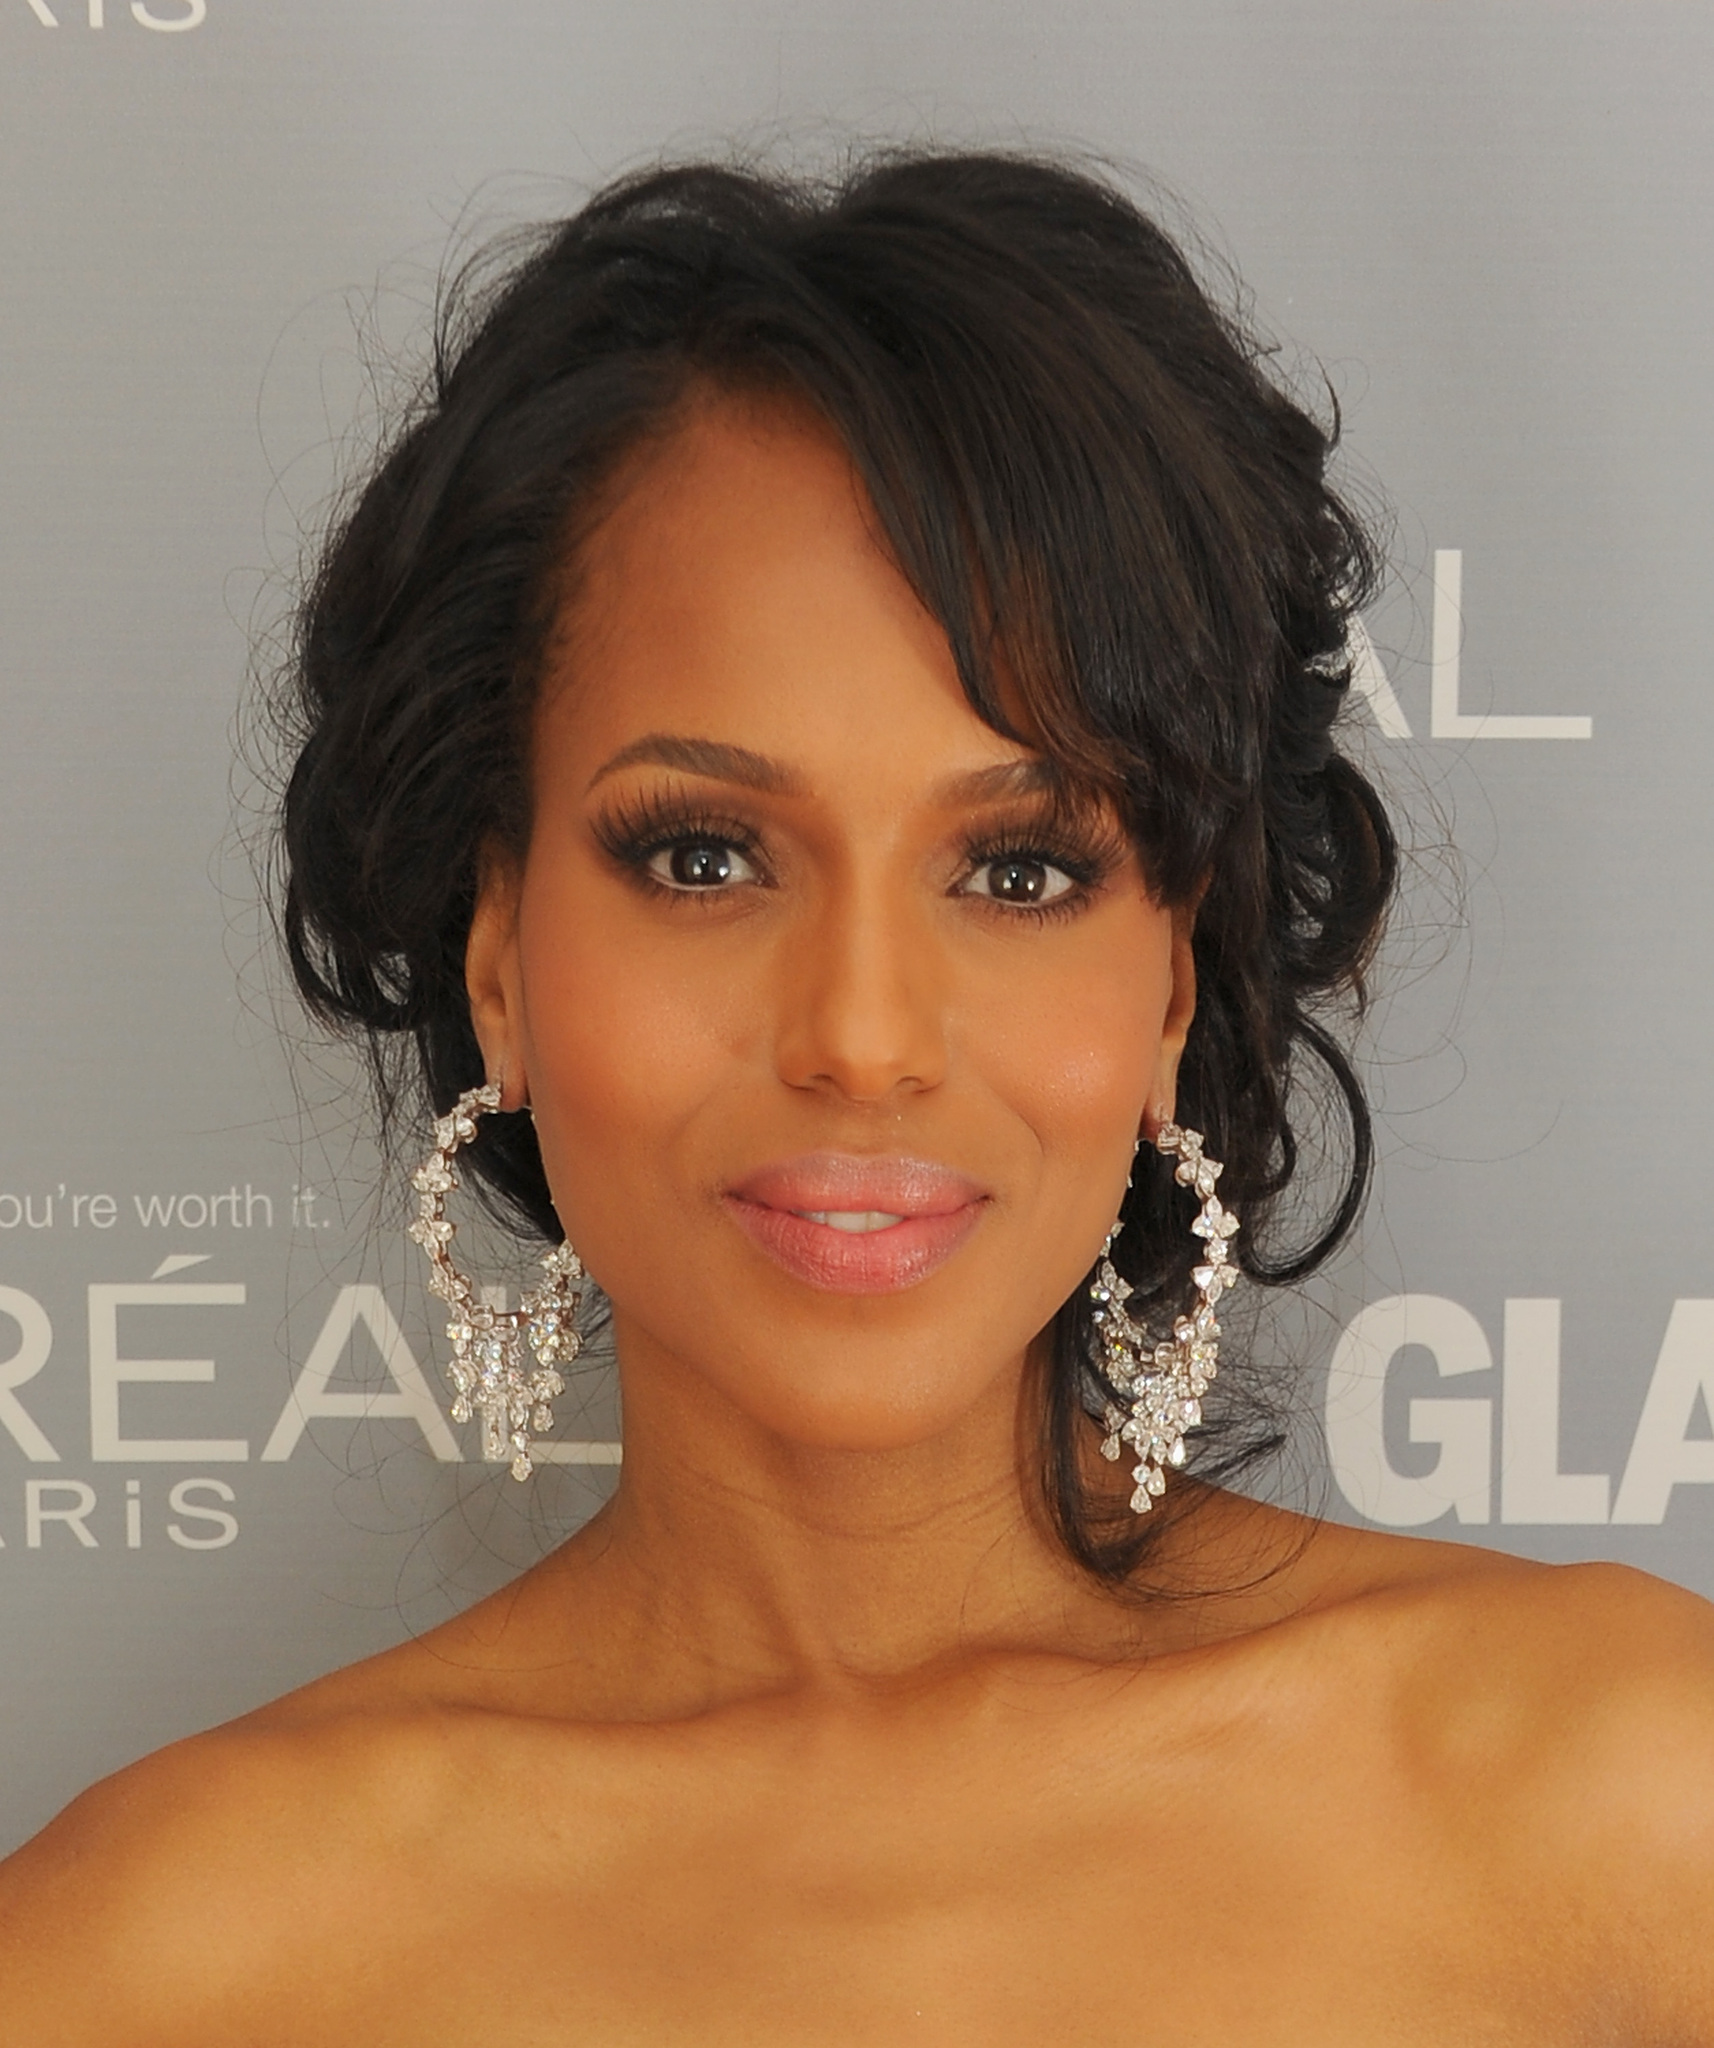 c80995f5b09a Kerry Washington - IMDb